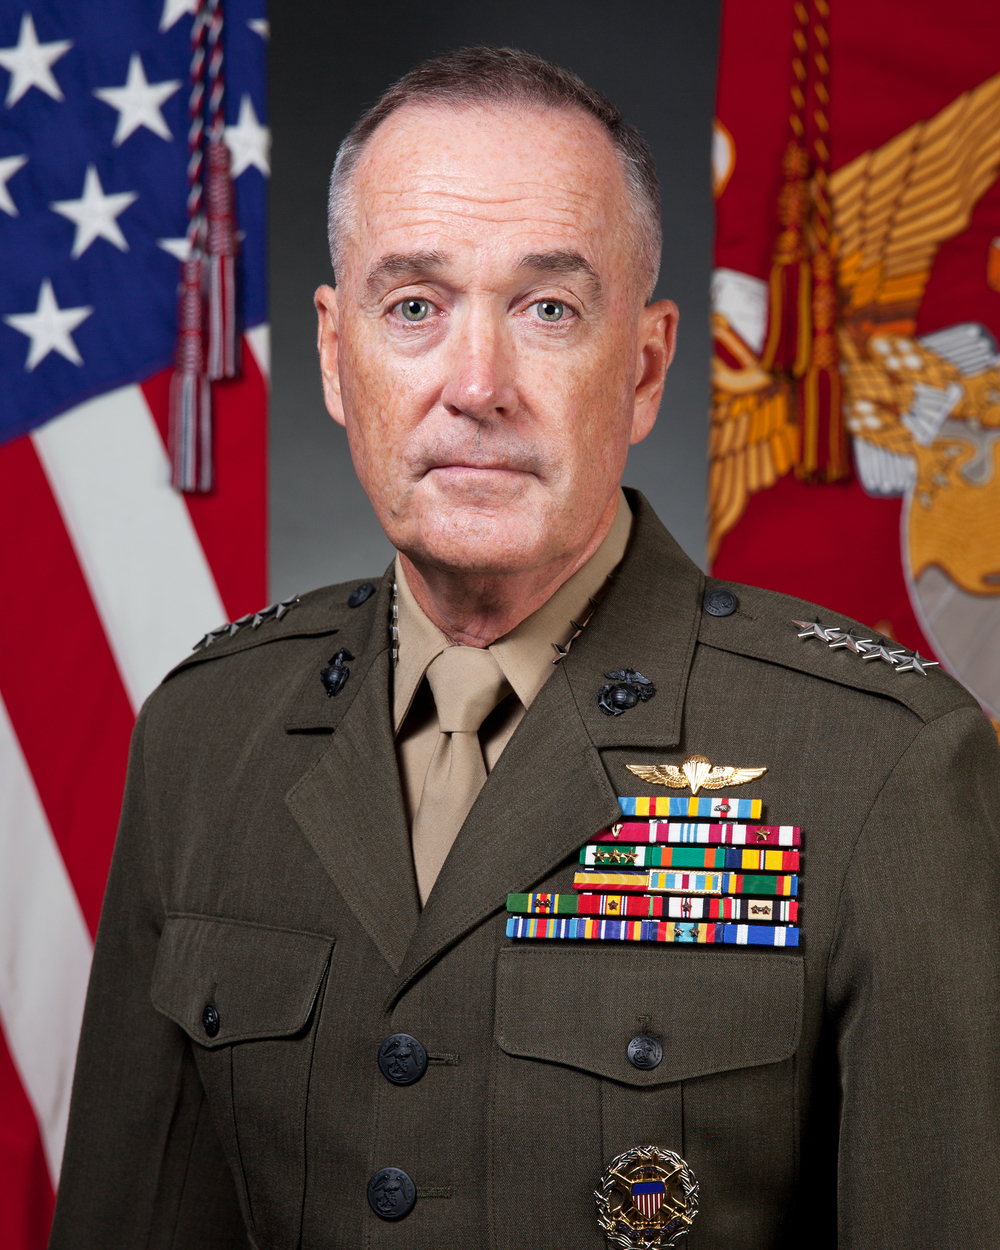 U.S. Chairman of the Joint Chiefs of Staff Gen. Joseph Dunford, Jr. Credit: U.S. Marine Corps via Wikimedia Commons.